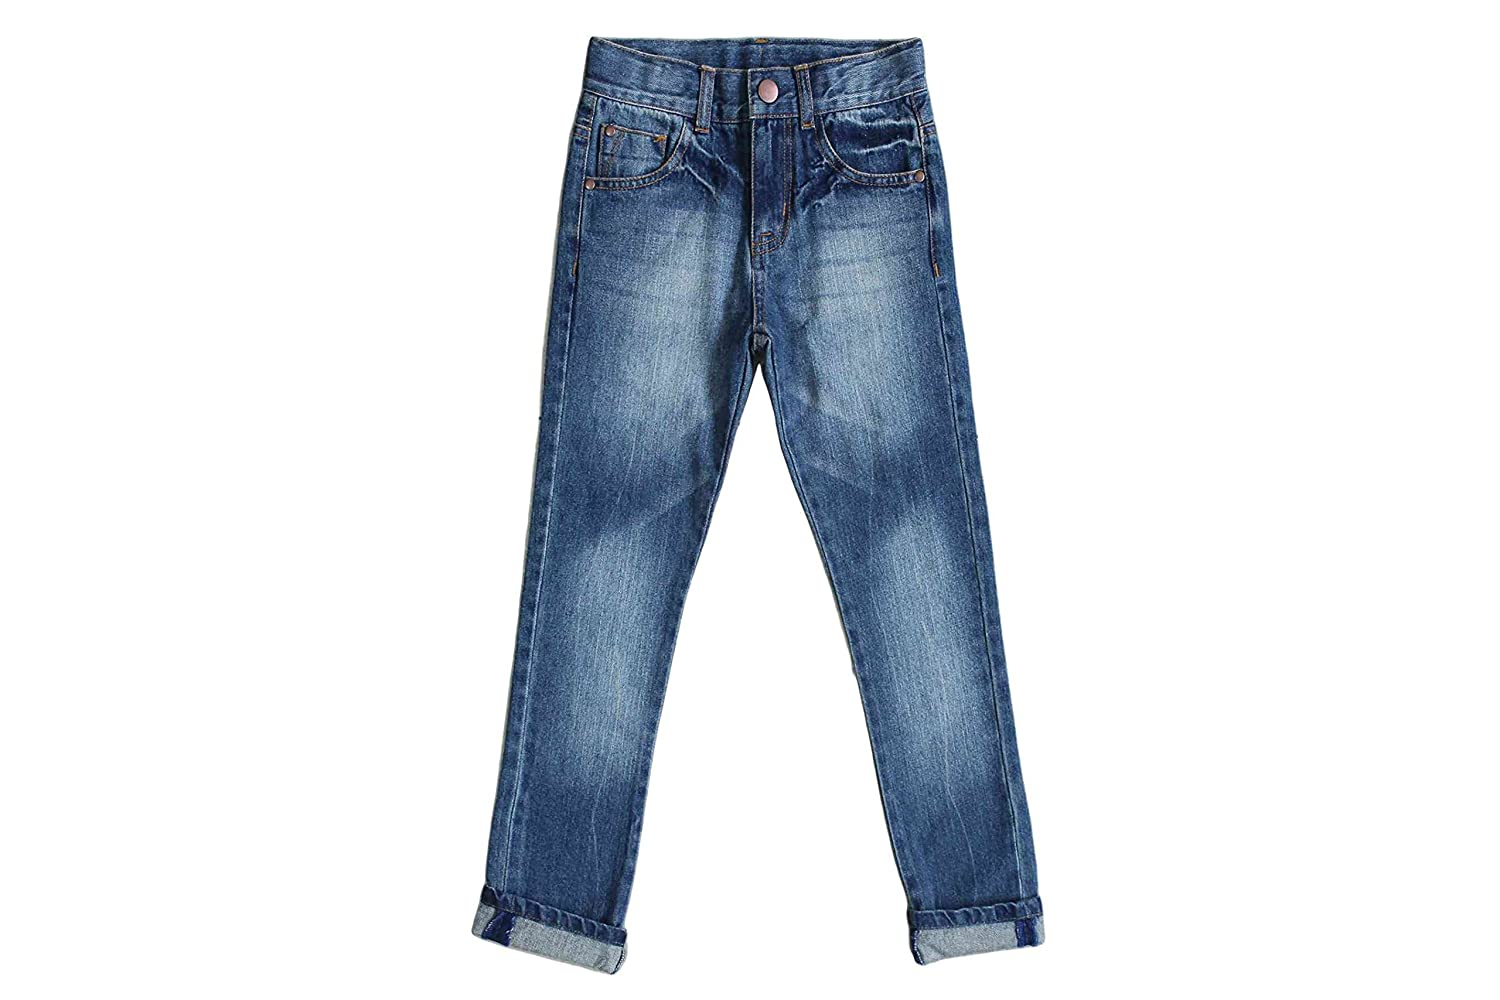 Bienzoe Little Boy's Stretchy Denim Jeans Elastic Waist Trouser